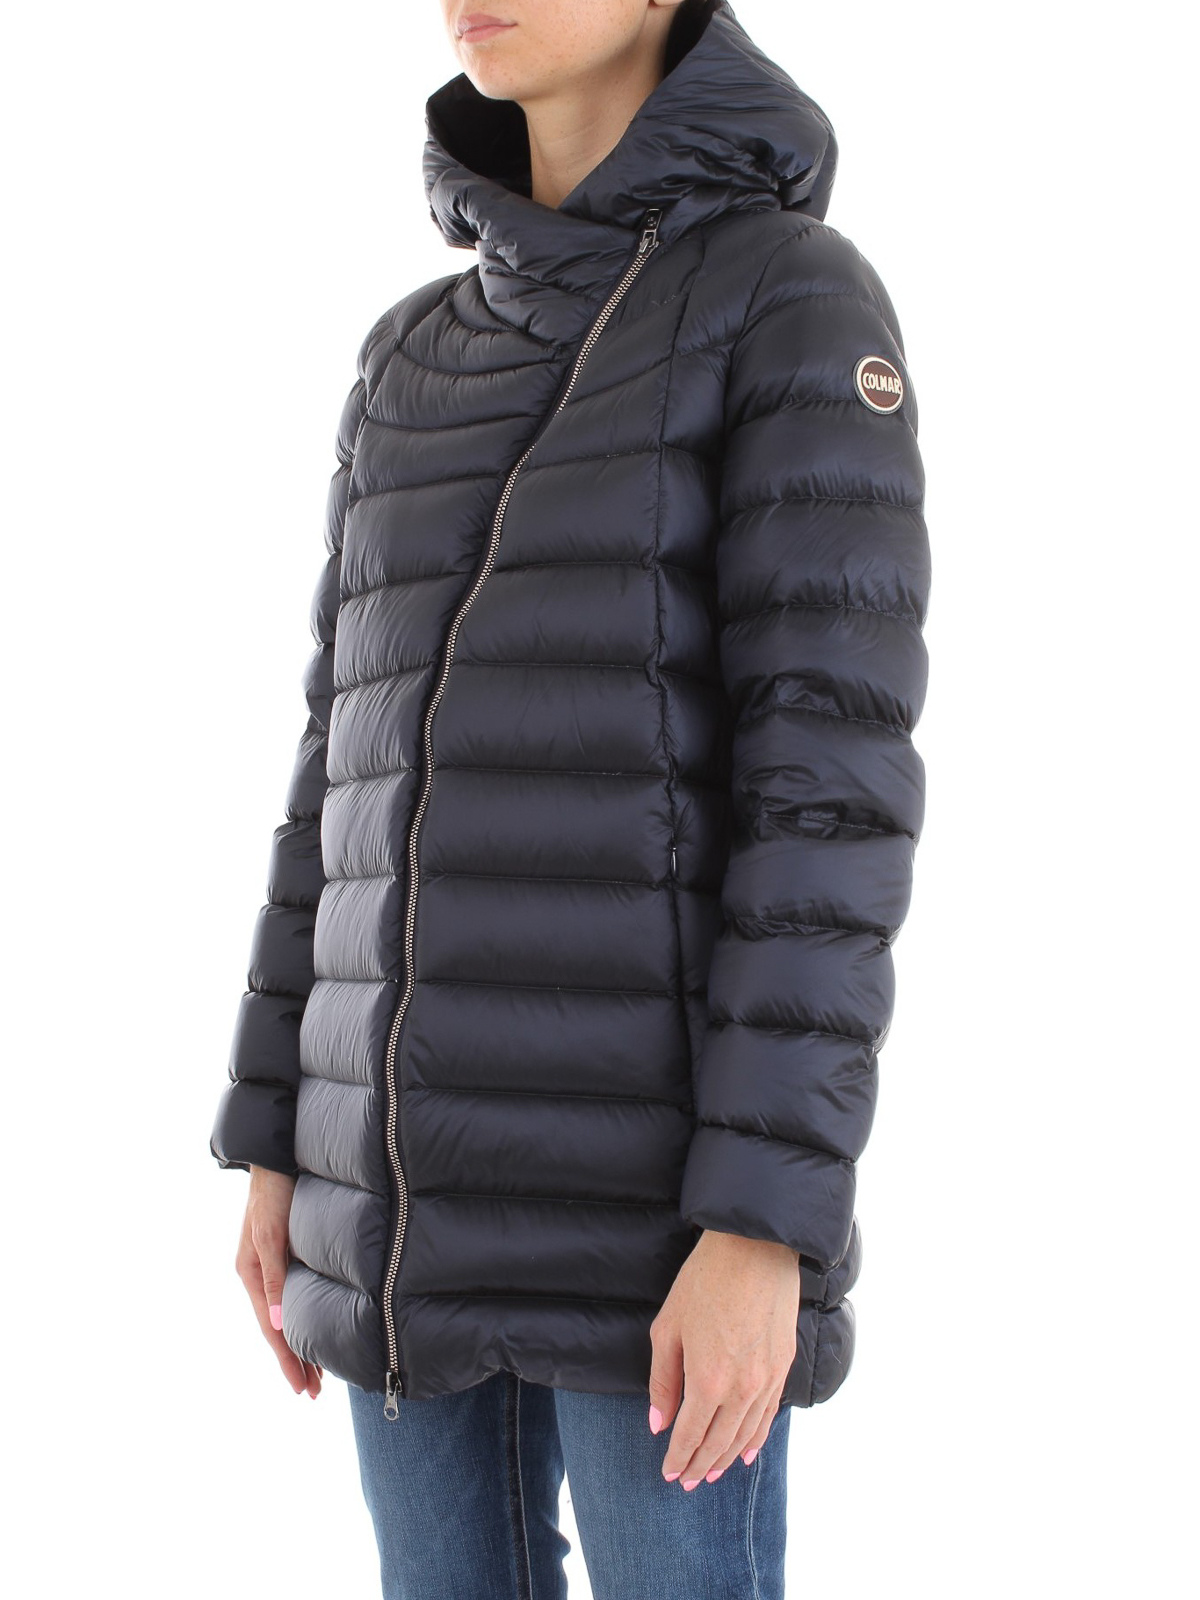 5a6f043df02 Colmar Originals  padded coats online - Place navy puffer hooded short coat